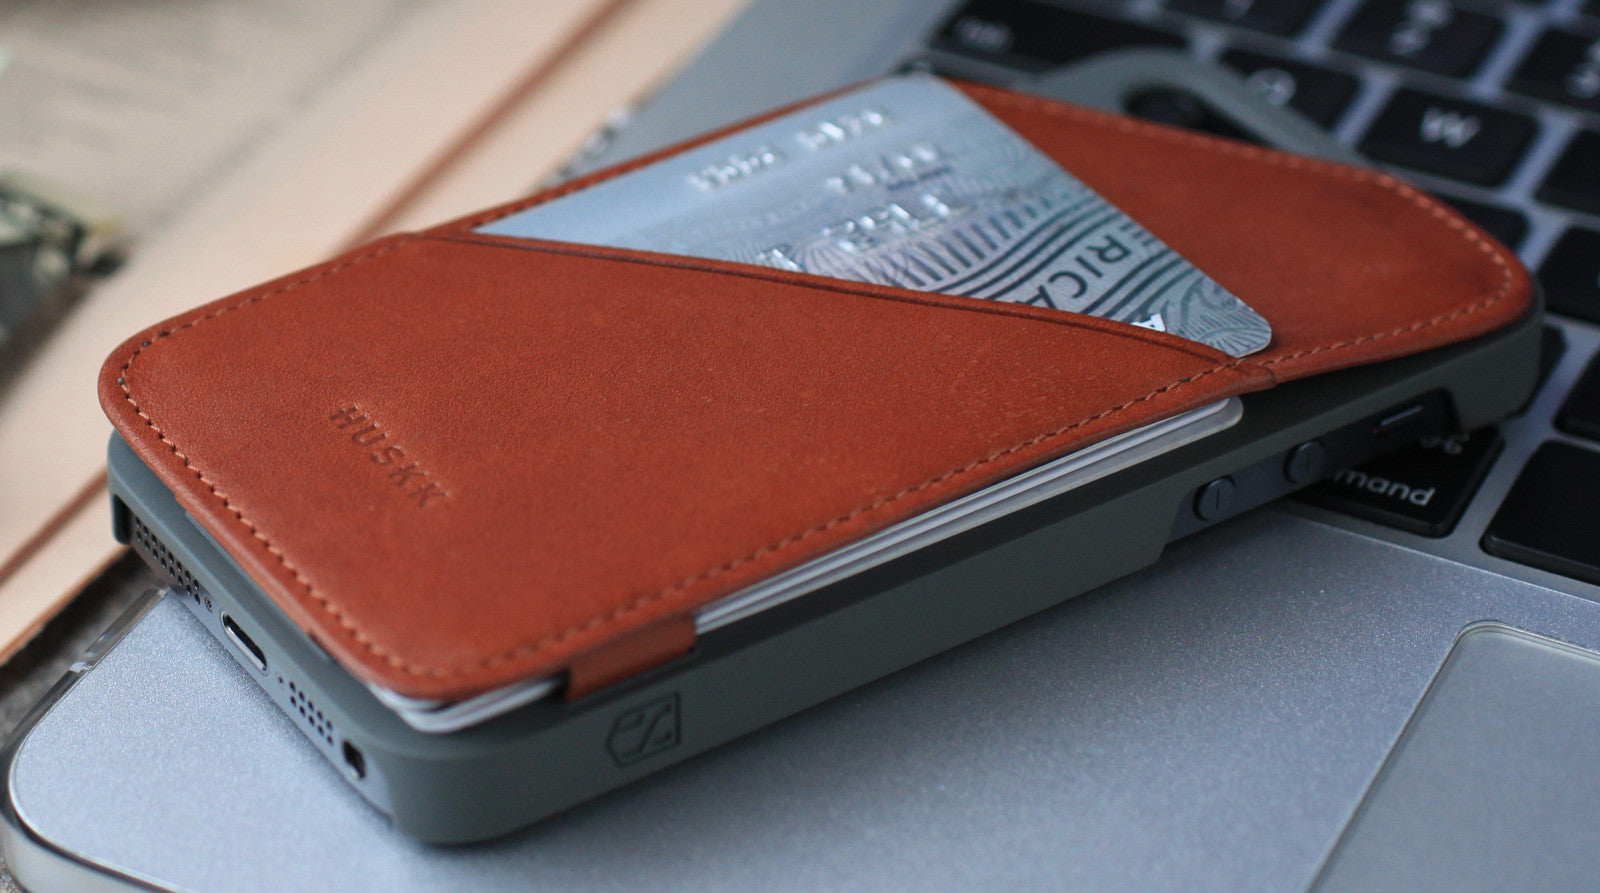 iPhone 5 Wallet Case - Card Case for iPhone 5 by Huskk - High-End Premium Italian Vegetable Tanned Leather - Tan - 6